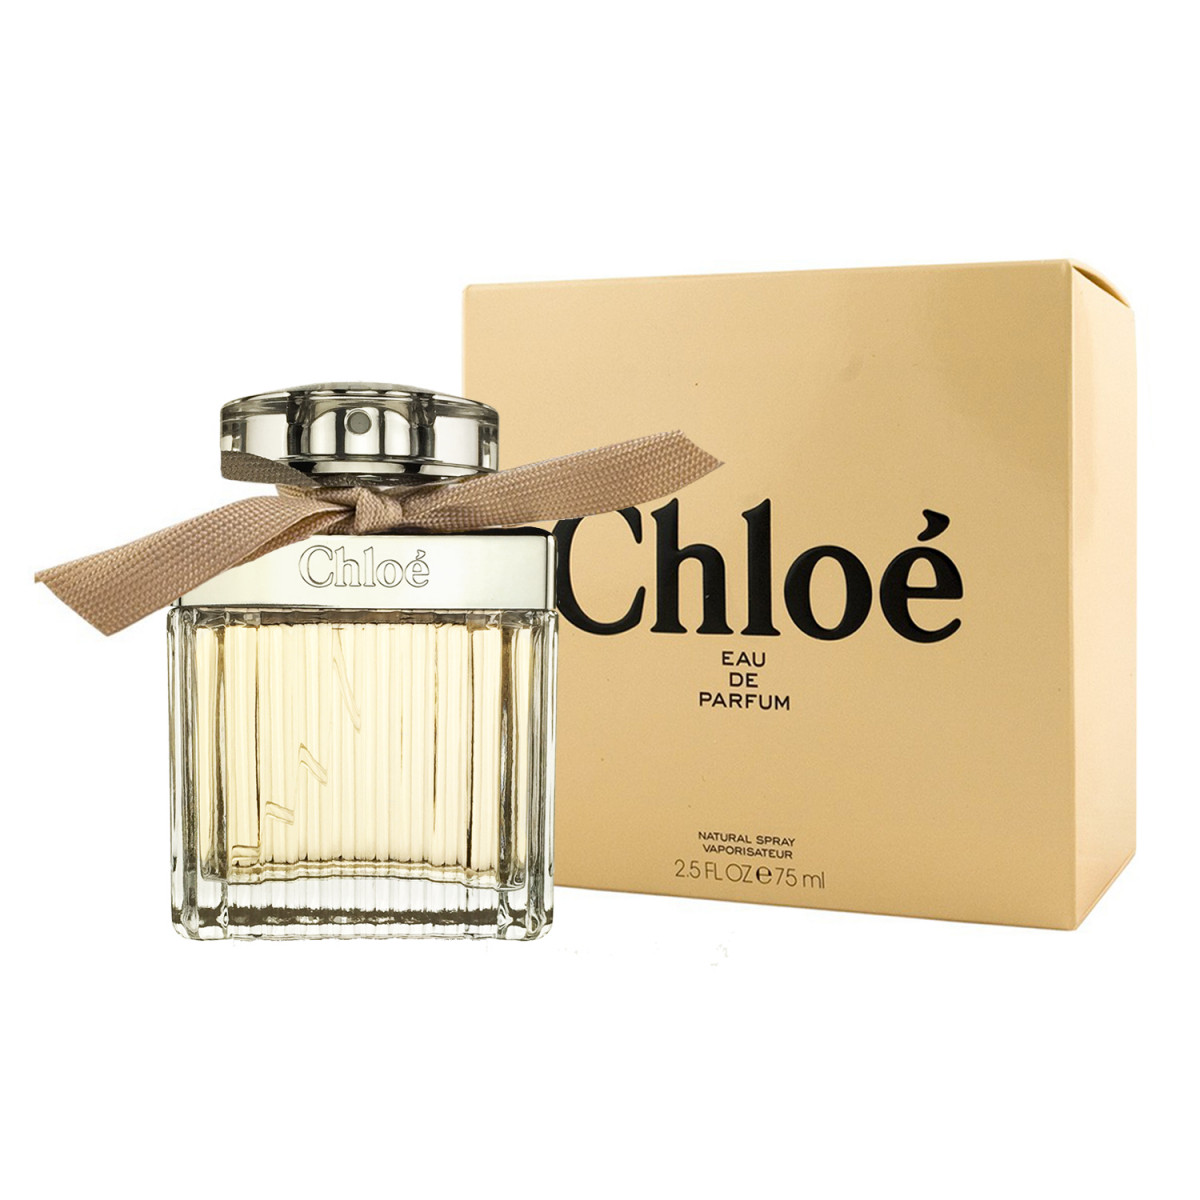 chloe chloe eau de parfum 75 ml woman chloe eau de parfum chloe marken. Black Bedroom Furniture Sets. Home Design Ideas